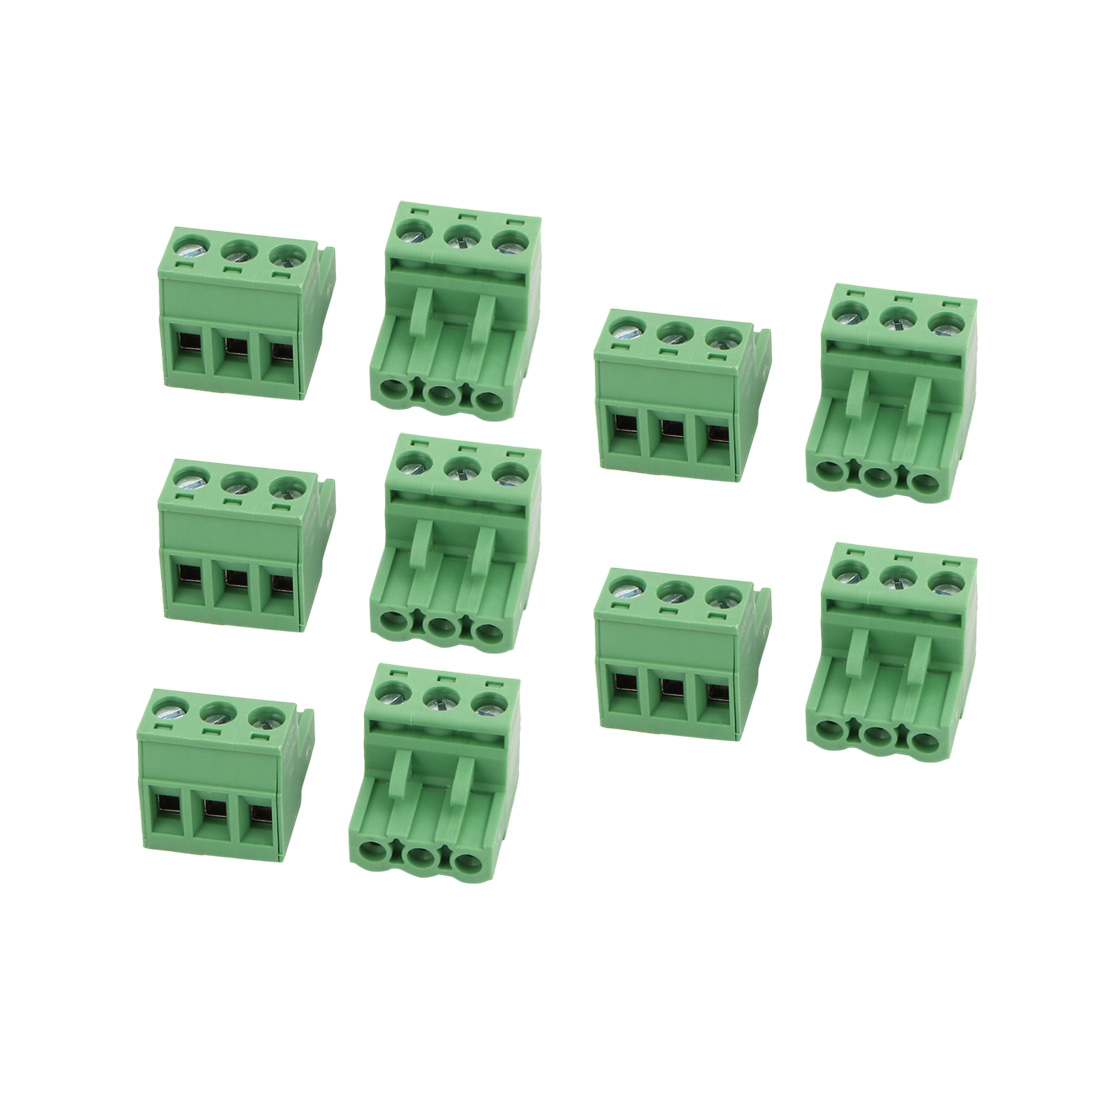 10Pcs AC300V 15A 5.08mm Pitch 3P Terminal Block Wire Connection for PCB Mounting